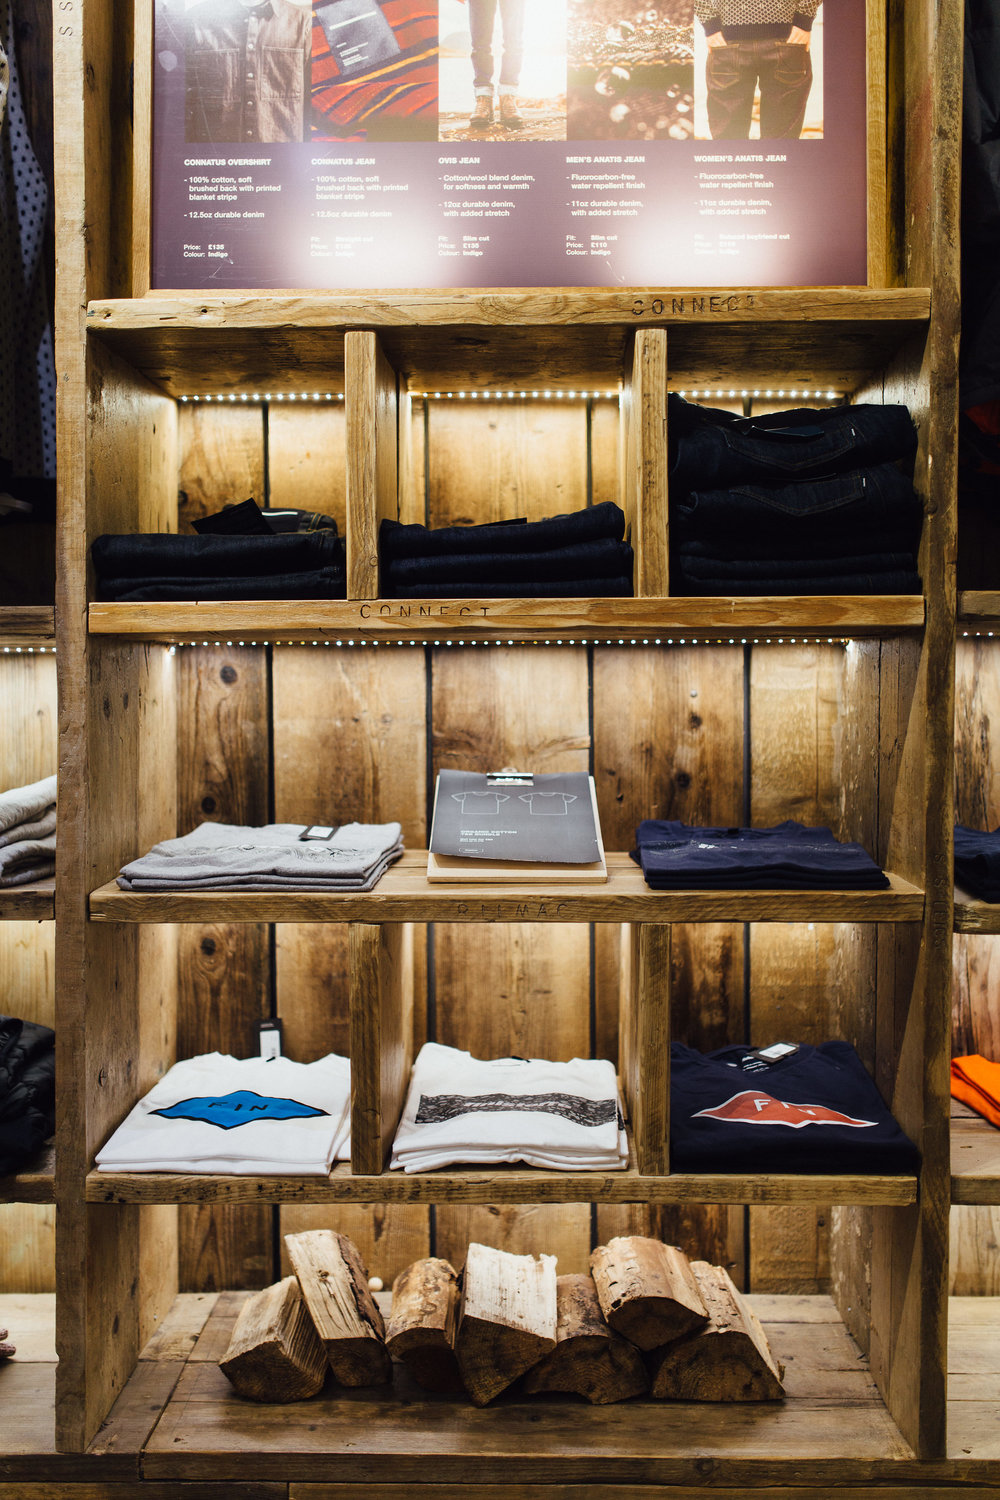 Jonathan-Simpson-Finisterre-London-Store-033.jpg